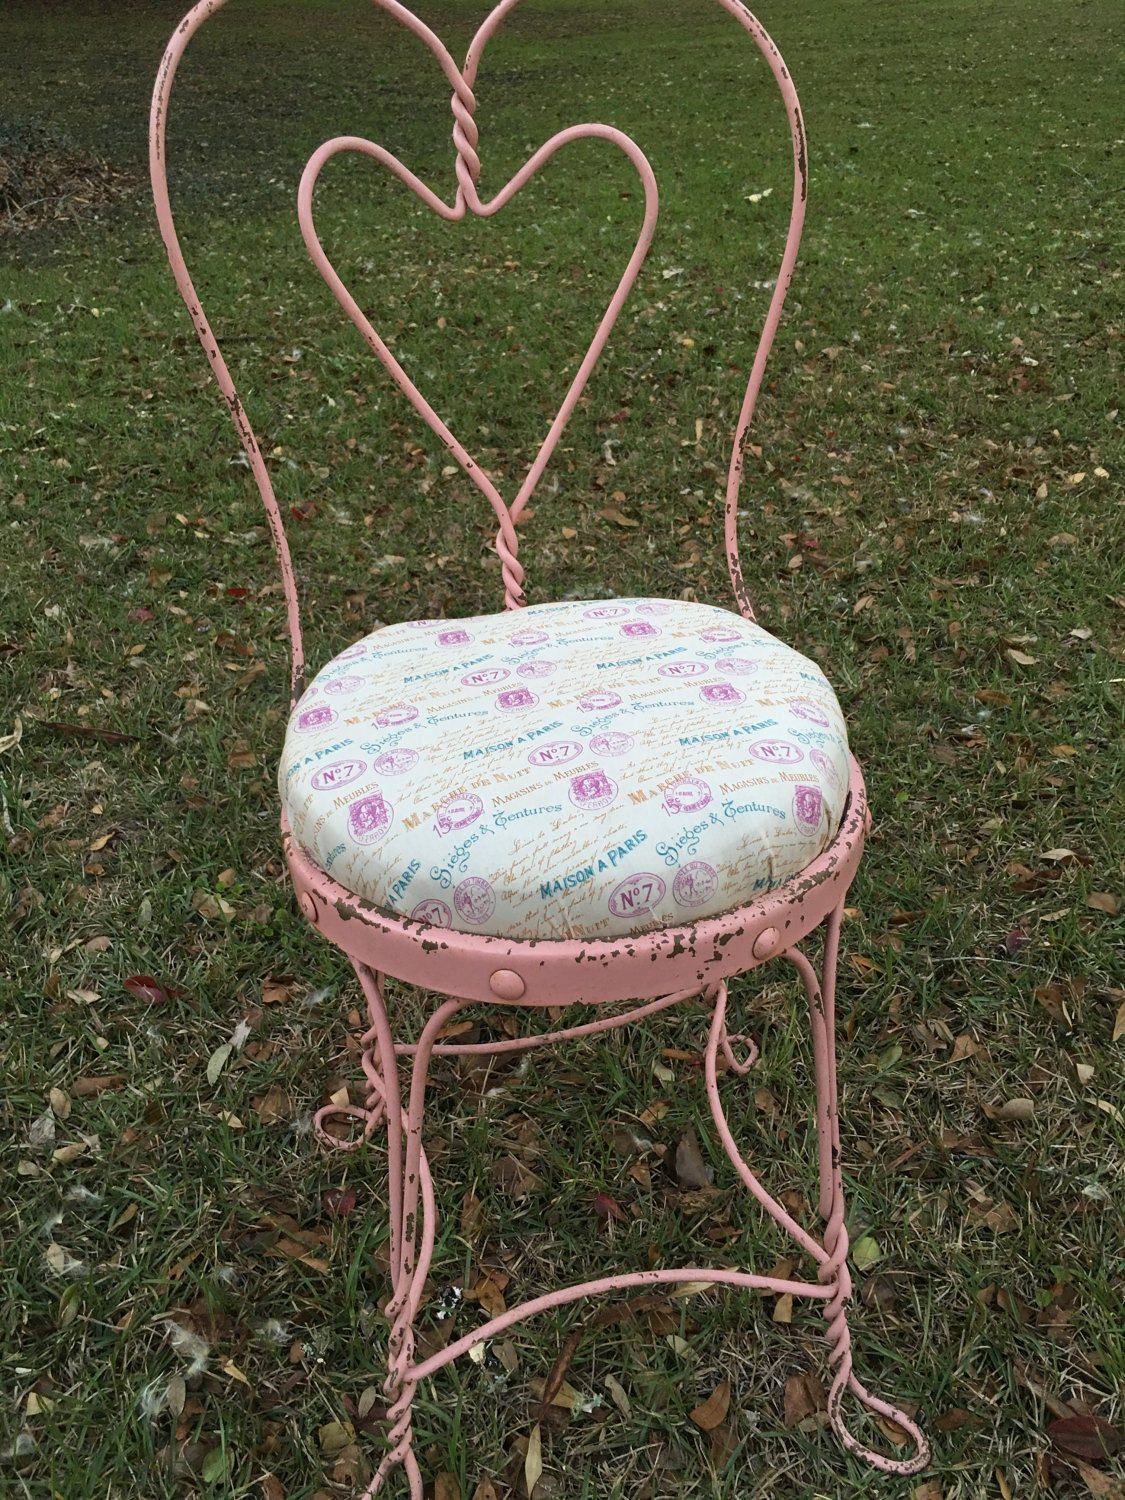 Wrought Iron A Parlor Chair Vanity Chair Shabby Chic Pink Spring Valentine Gift By Maggiebleus On Ets Vanity Chair Rustic Shabby Chic Decor Rustic Vanity